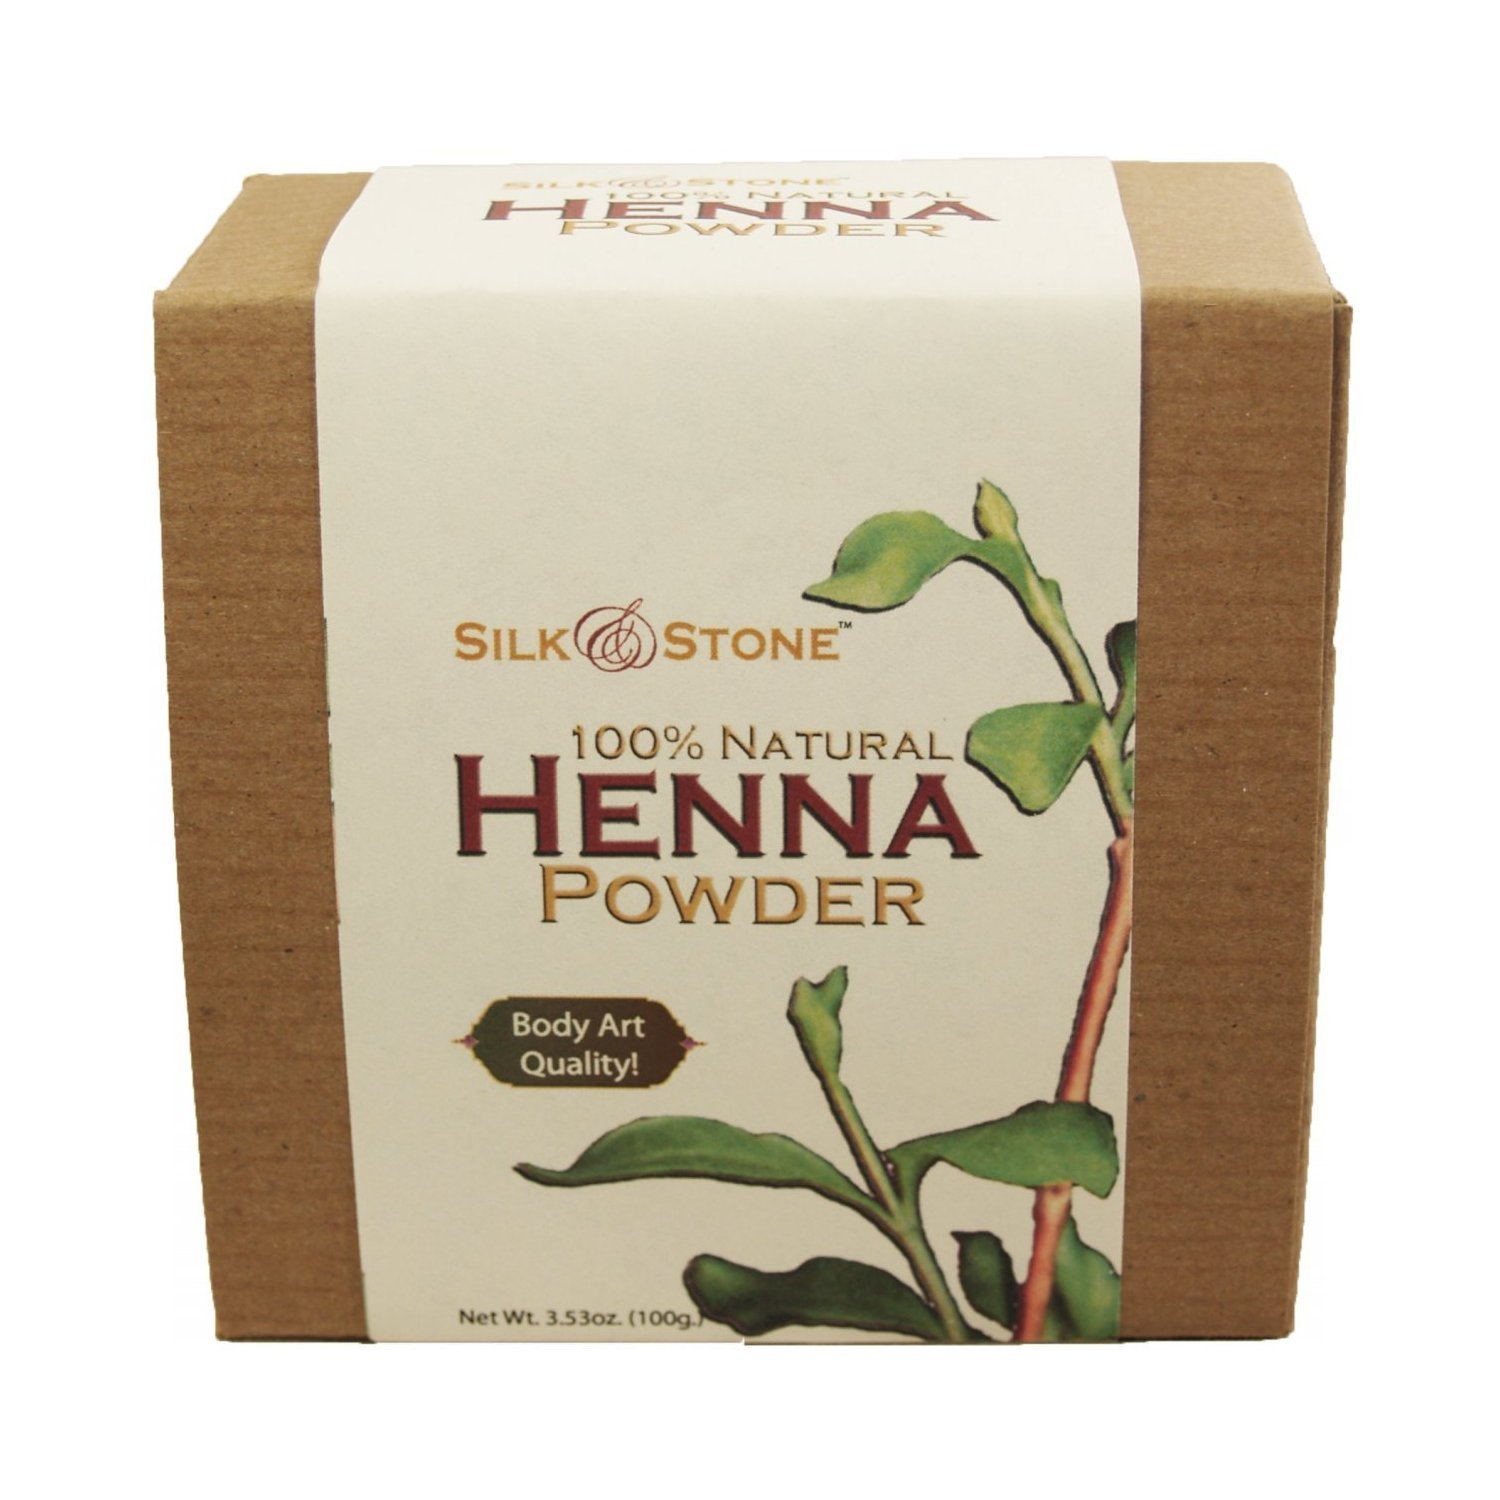 100% Natural Henna Powder (Body Art Quality)